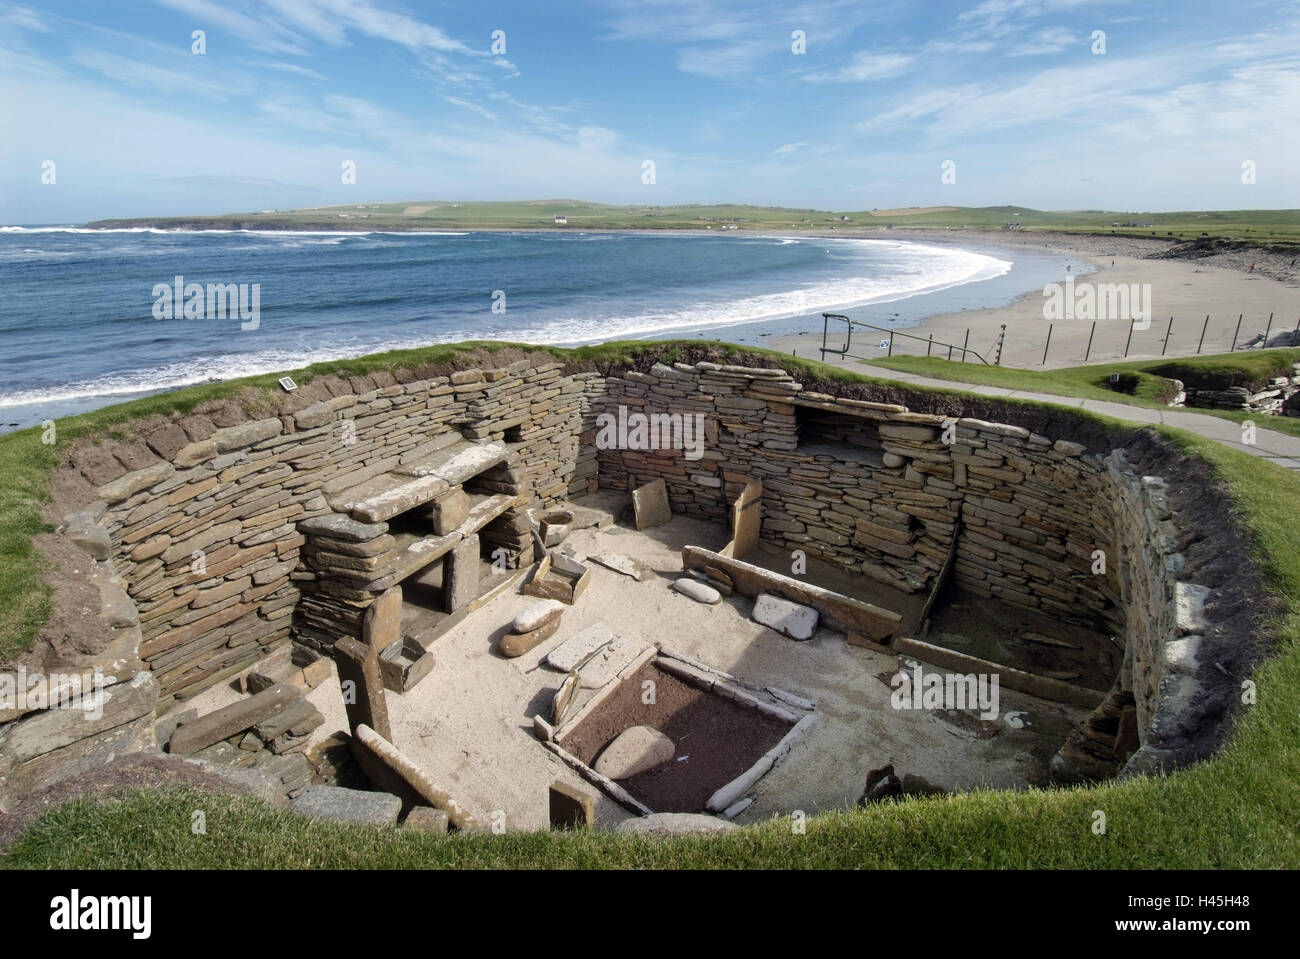 Great Britain, Scotland, Orkneyinseln, island Main country, Skara Brae, settlement, Stone Age, simulation, interior, - Stock Image